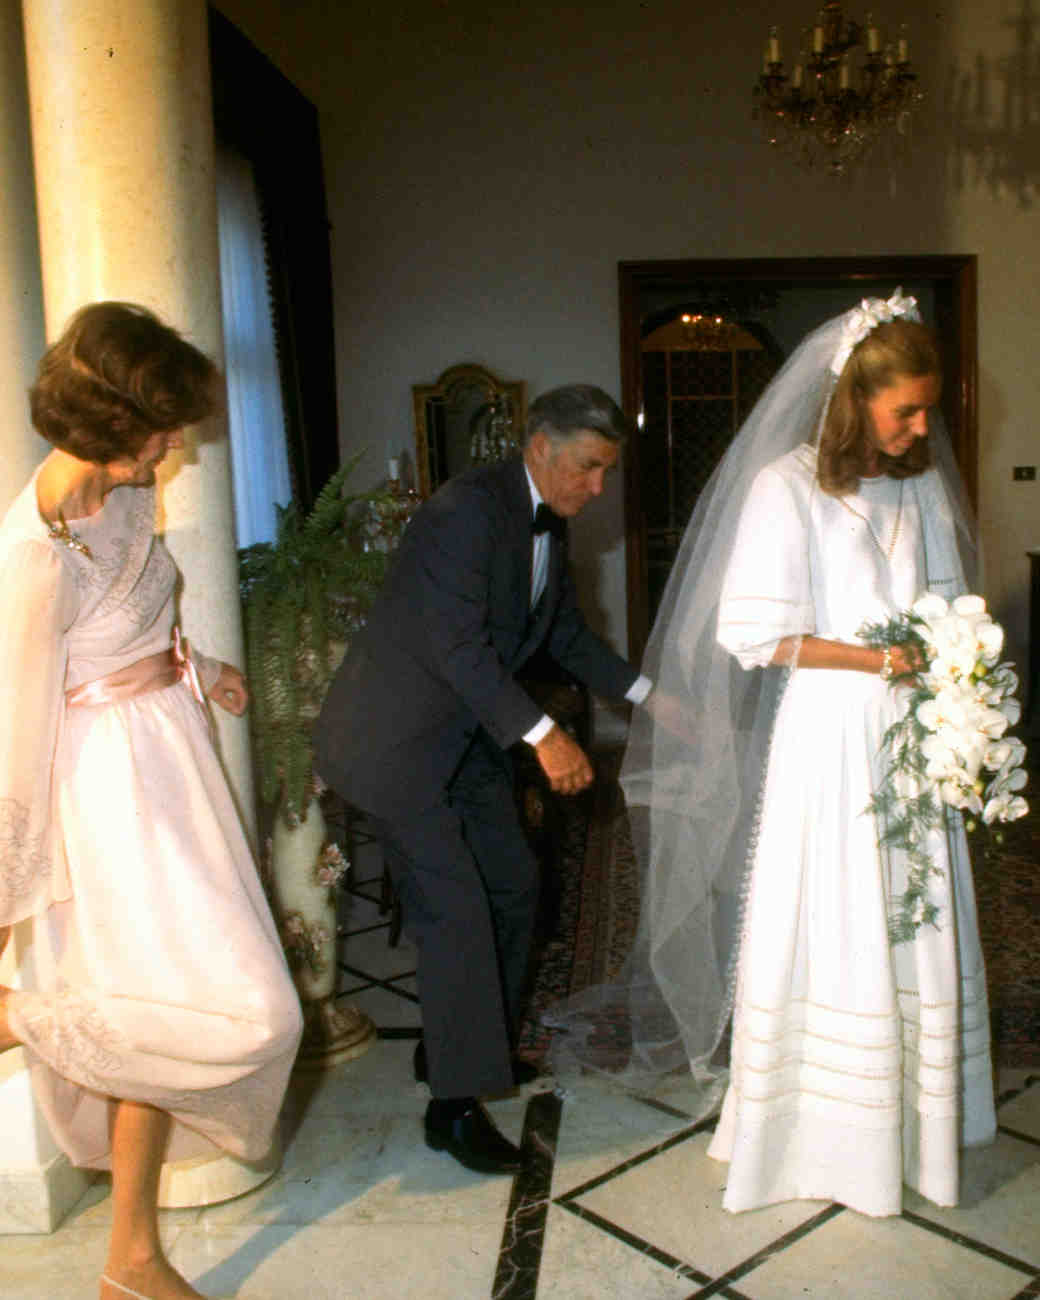 The 15 best royal wedding dresses of all time martha stewart weddings ombrellifo Image collections